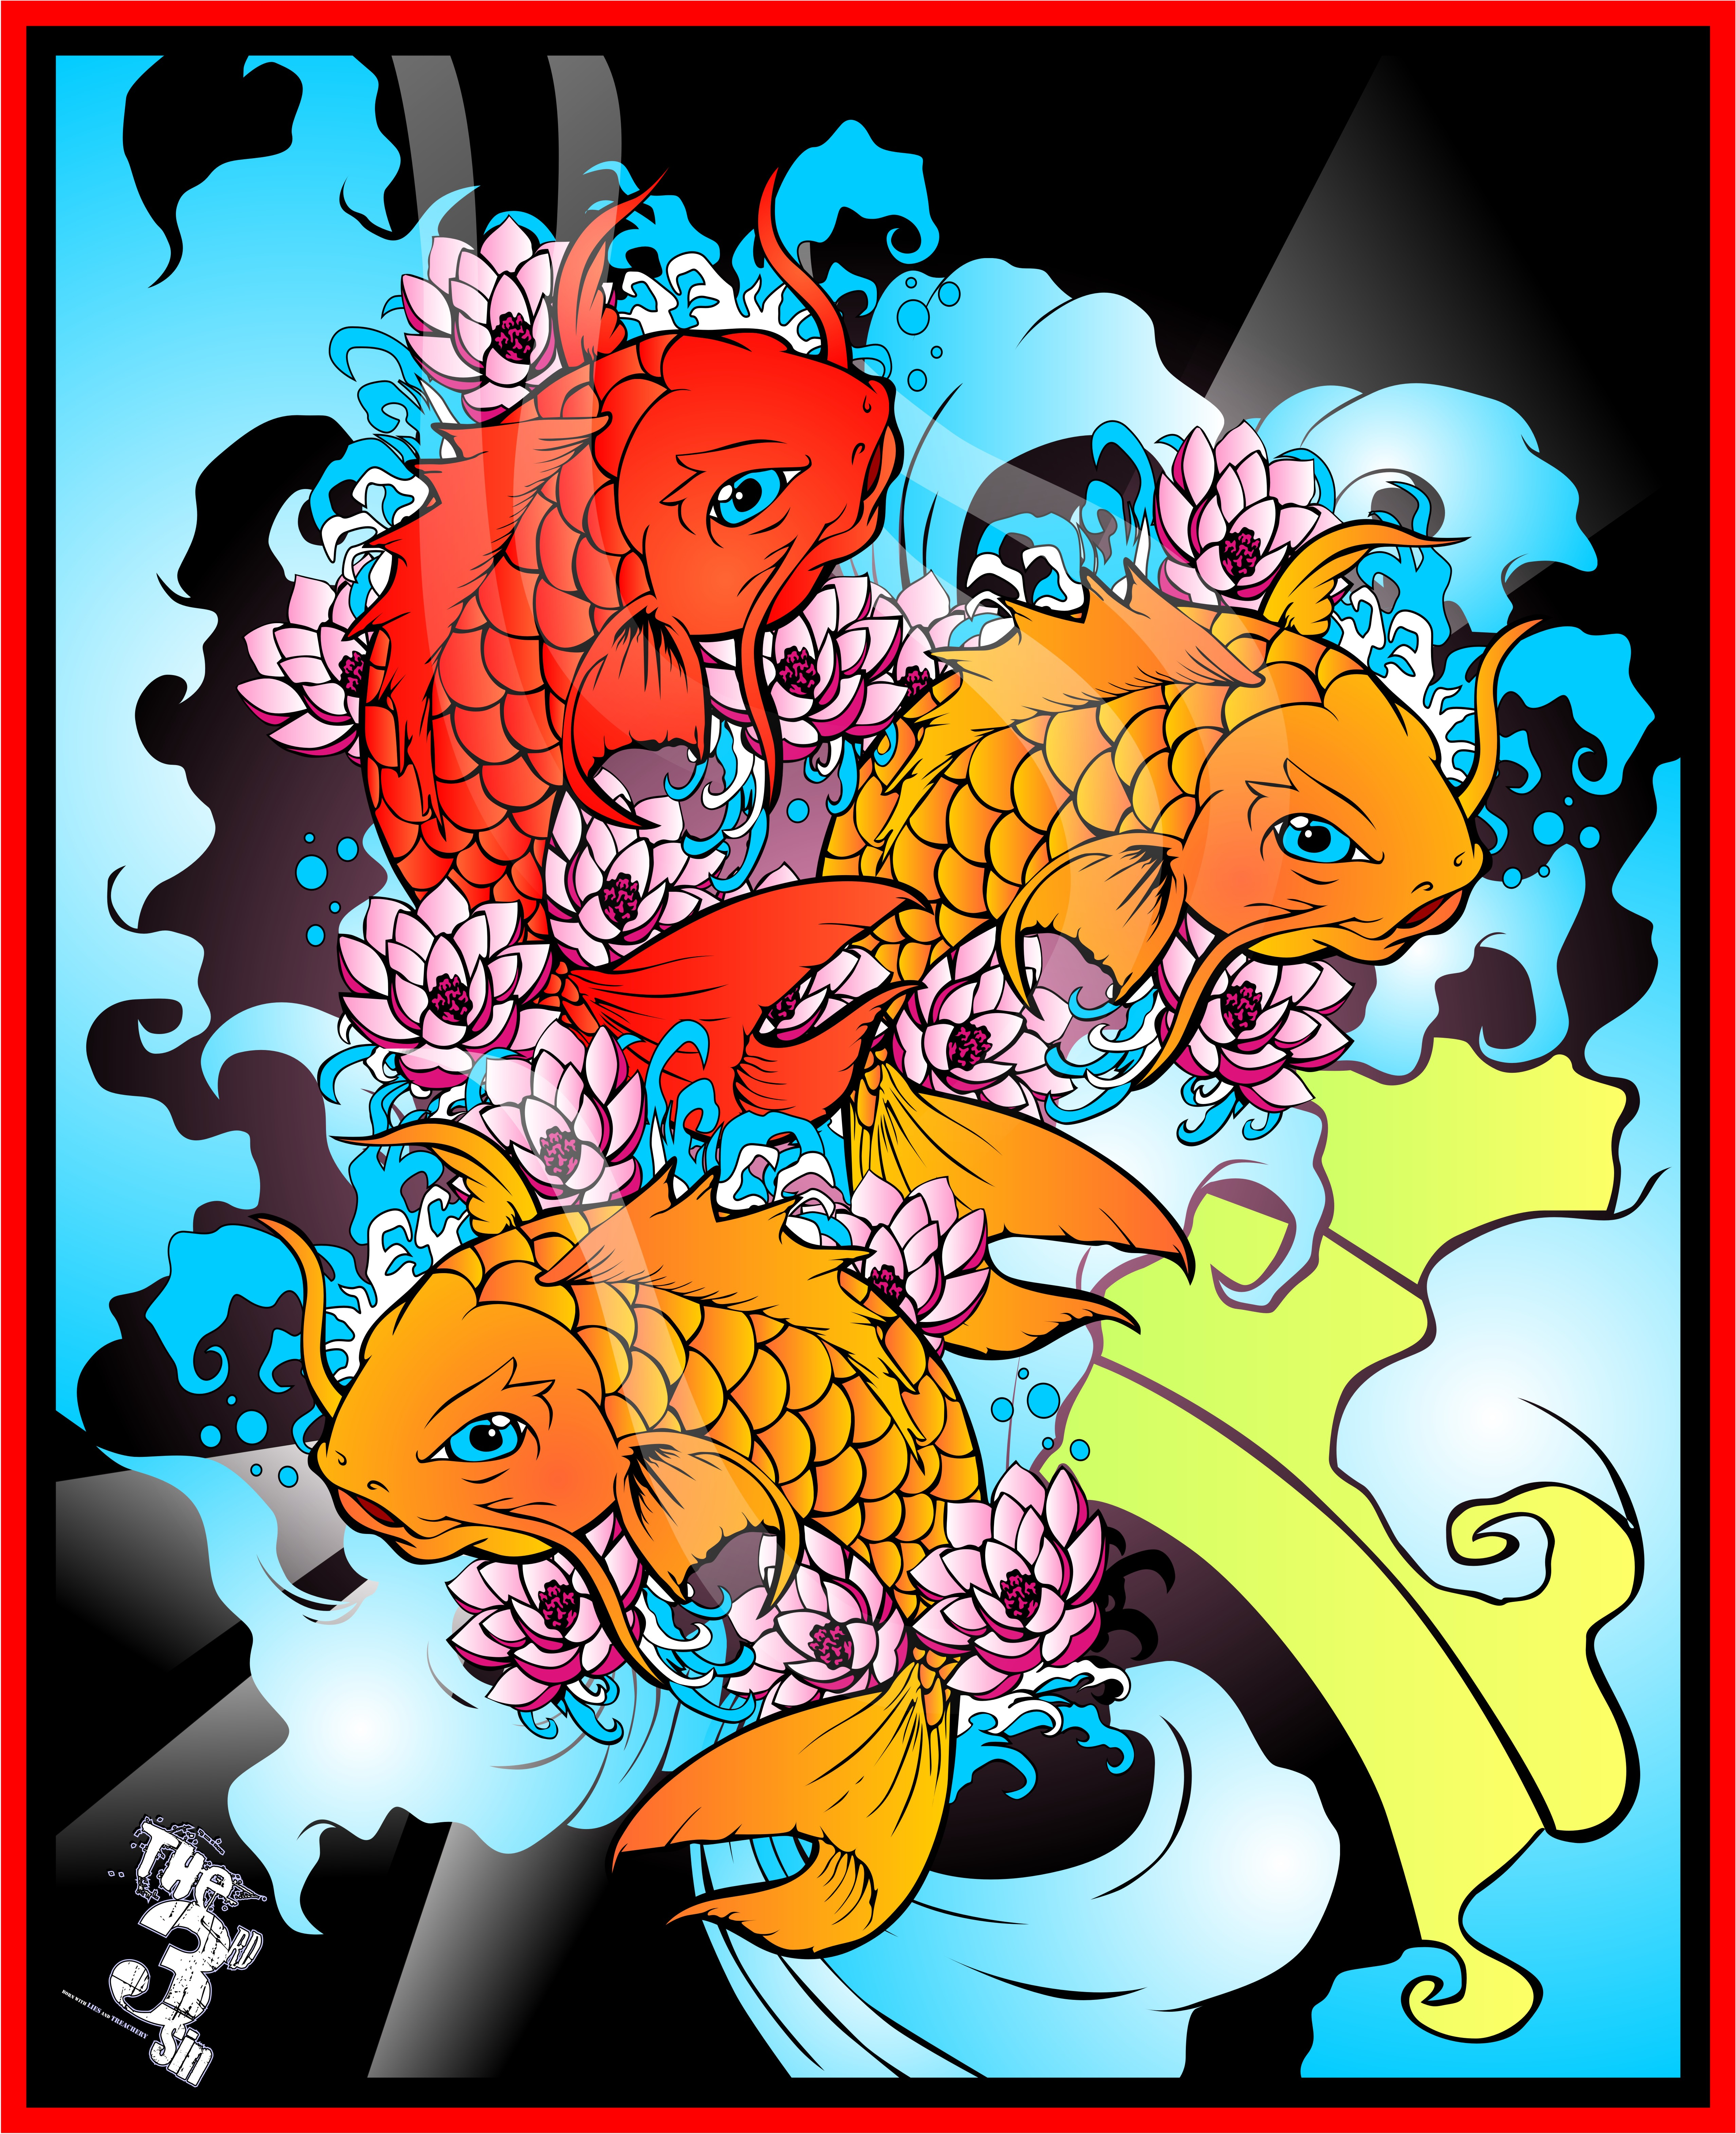 Japanese koi fish part ii by bytha on deviantart for Koi fish japanese art